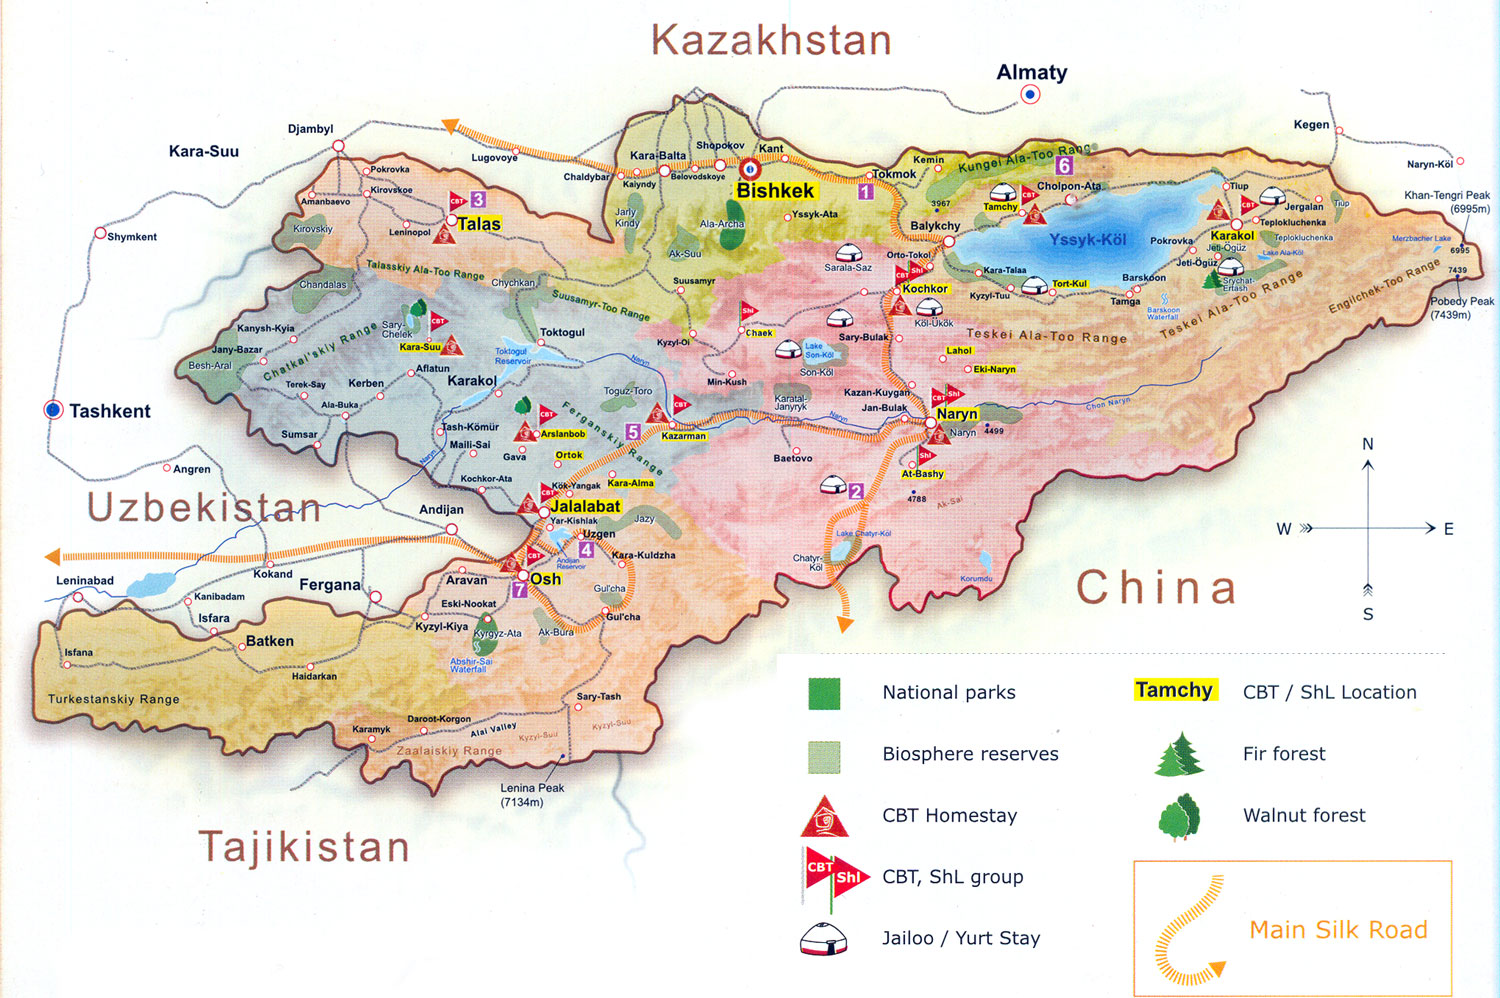 Map of Community Based Tourism in Kyrgyzstan